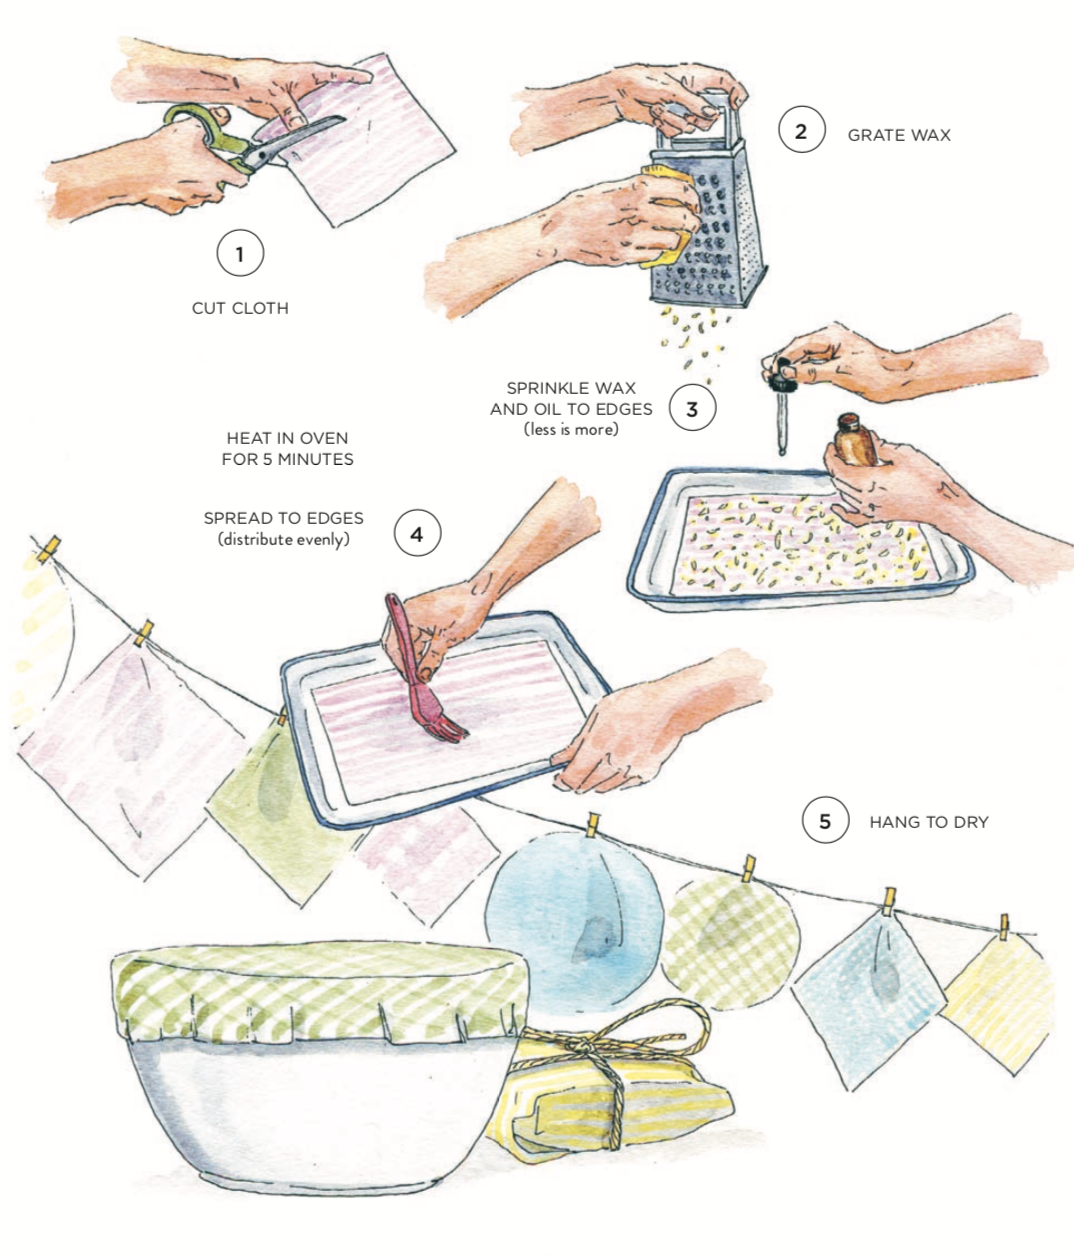 Beeswax DIY: making beeswax wraps + how to render your own wax - Milkwood #jojobaoil